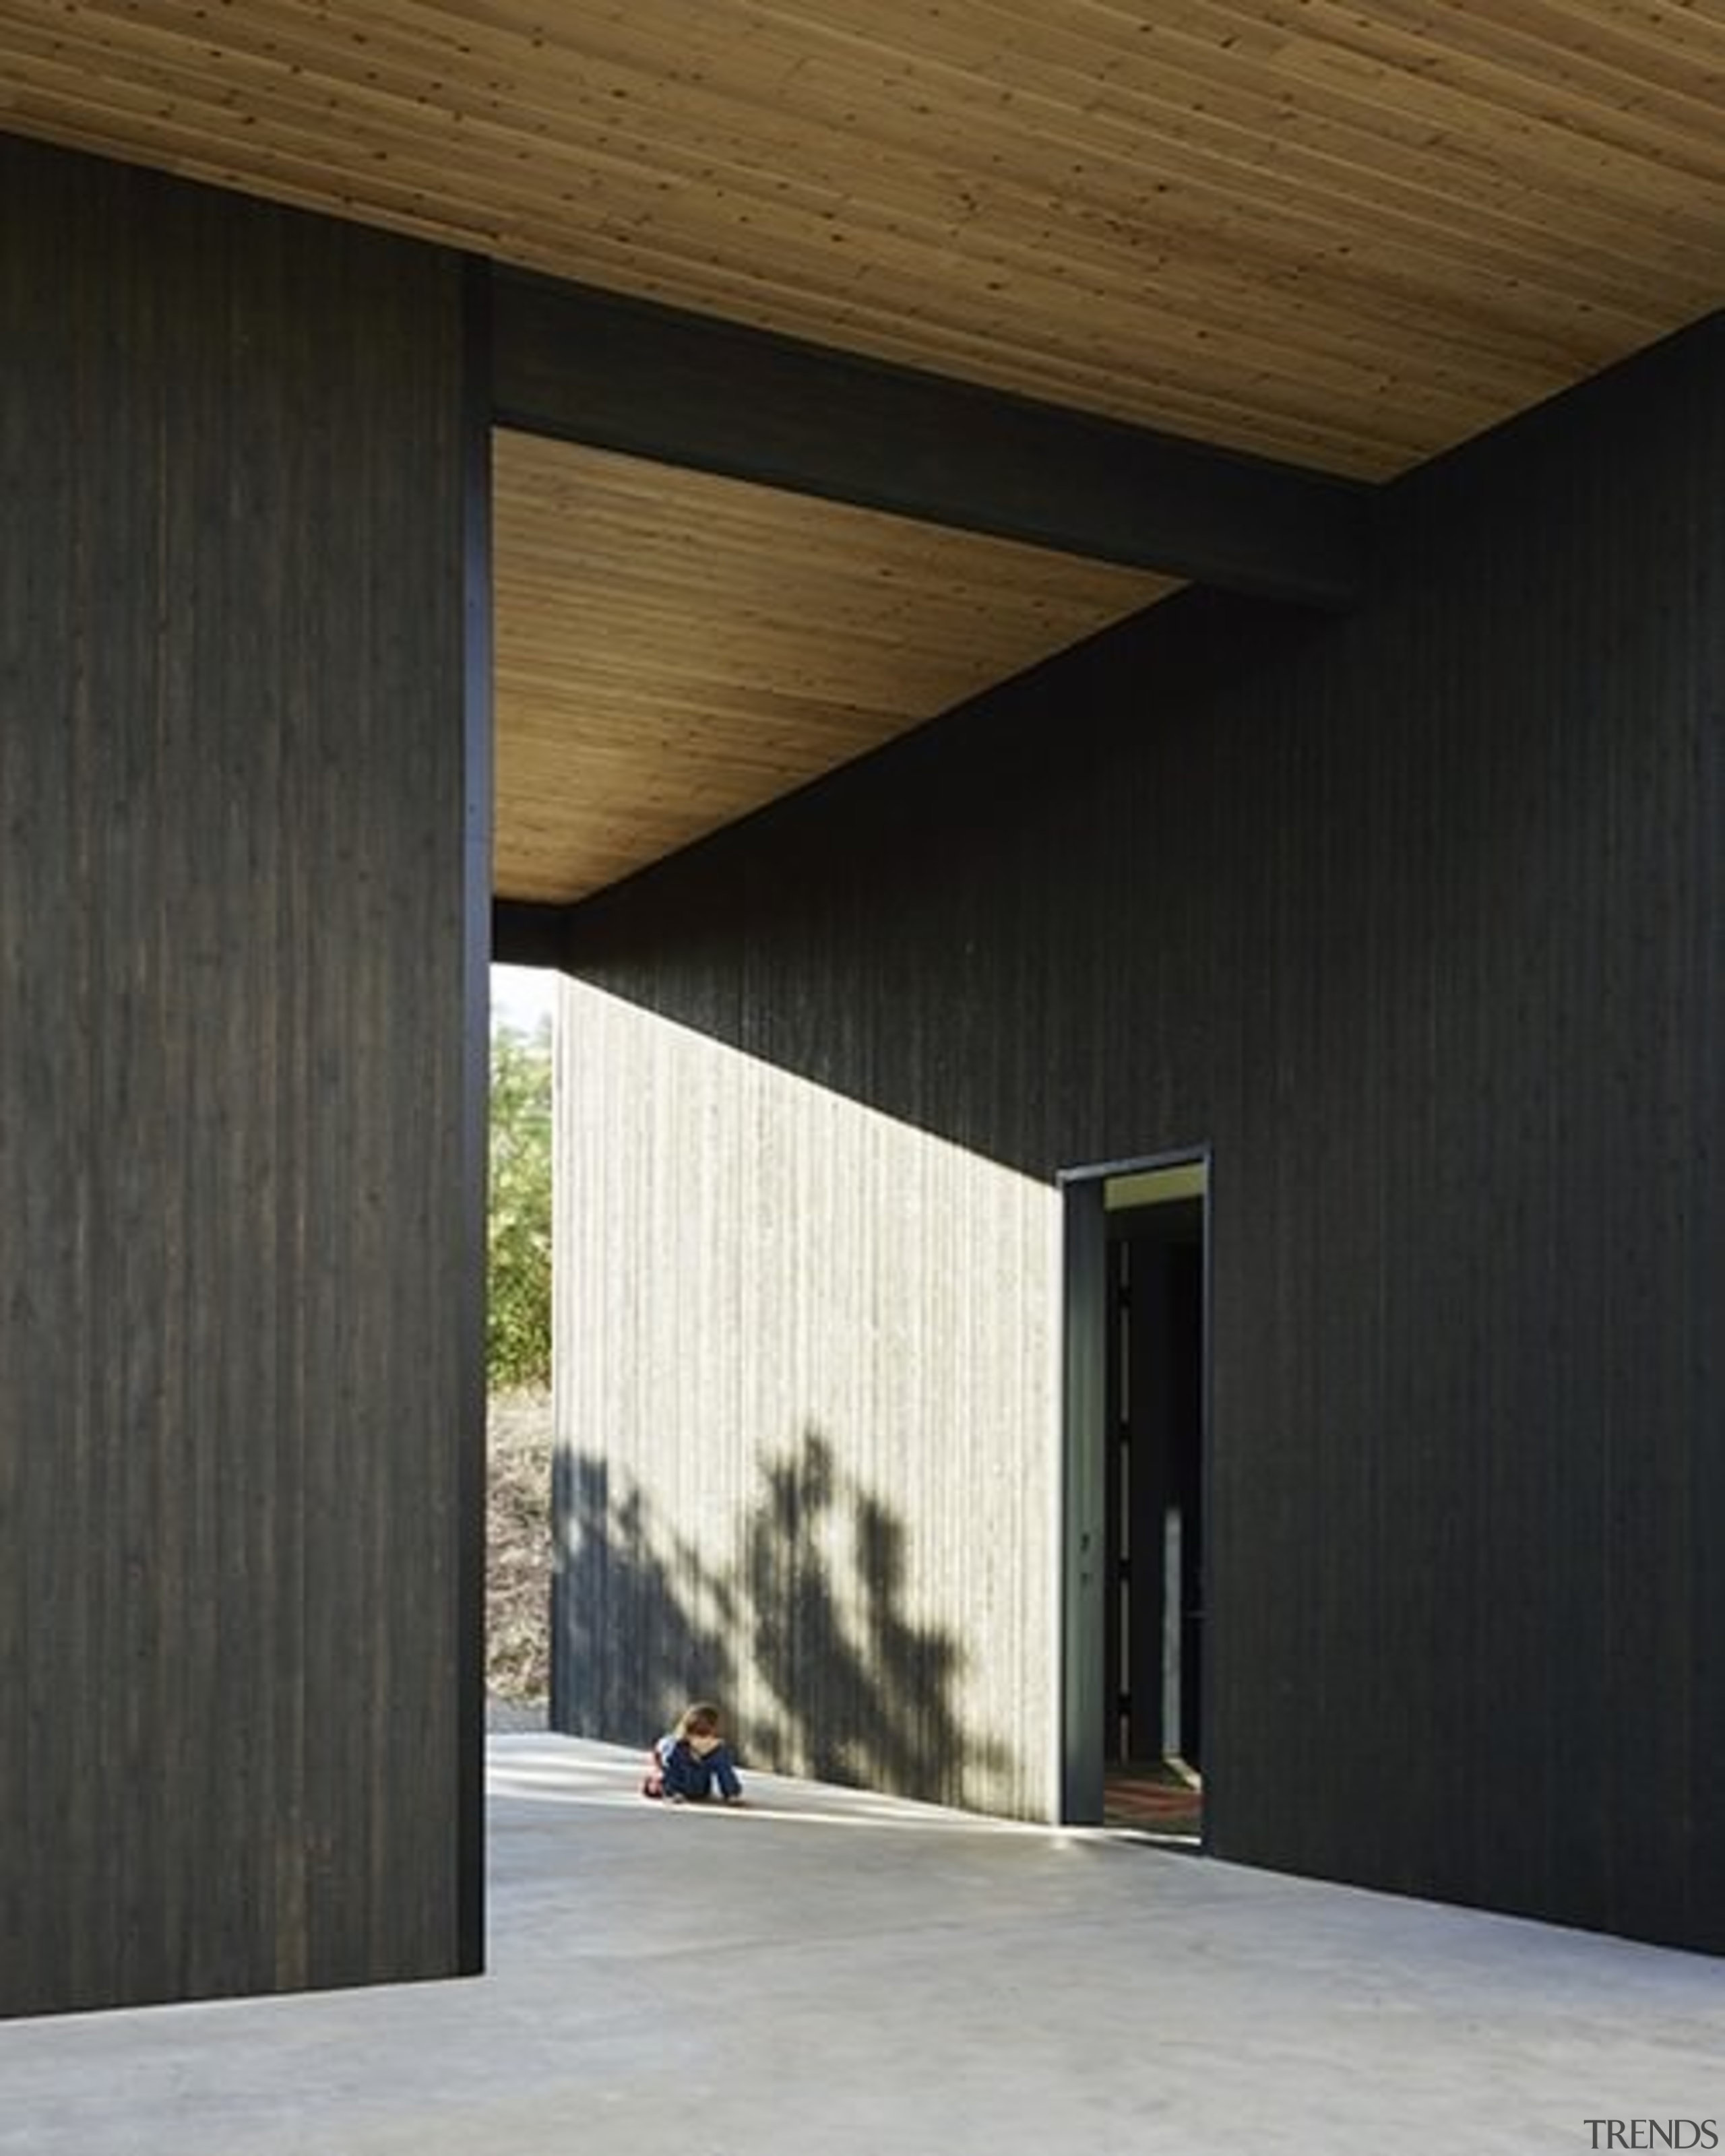 Architect: goCstudioPhotography by Kevin Scott, Kelly Turso architecture, daylighting, facade, house, structure, wall, wood, black